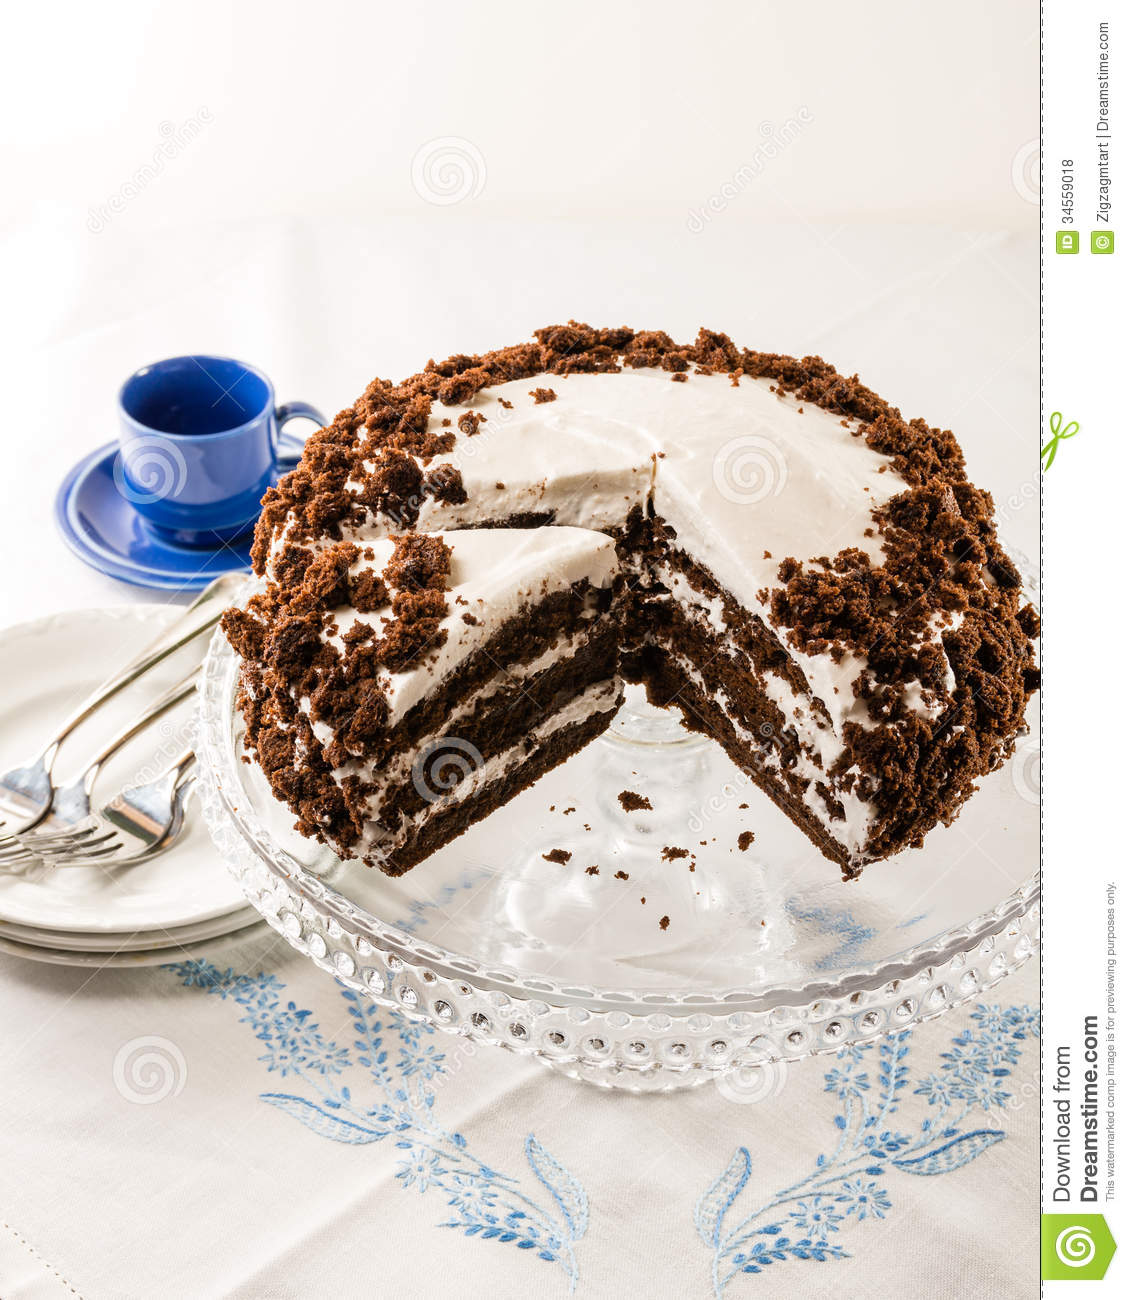 Chocolate Crumb Cake With White Icing Royalty Free Stock Photos ...